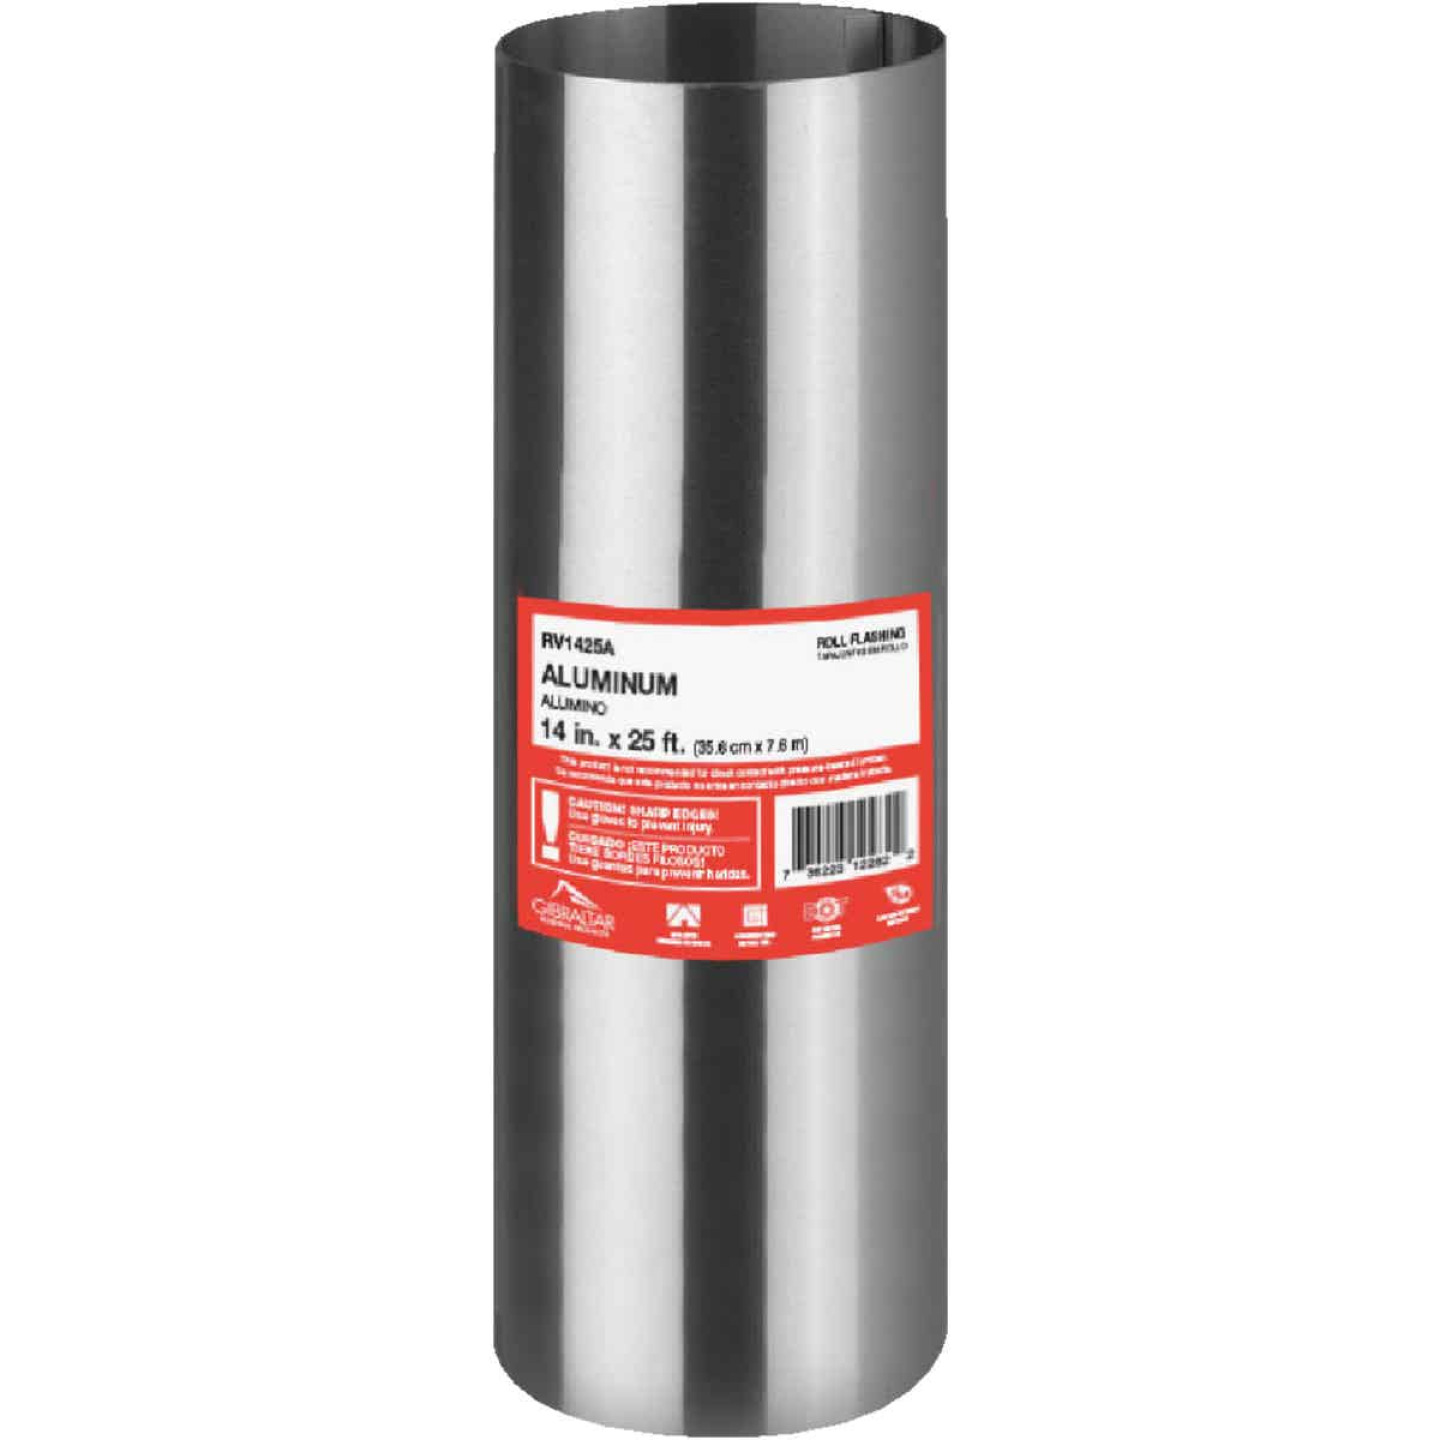 NorWesco 14 In. x 25 Ft. Mill Aluminum Roll Valley Flashing Image 1